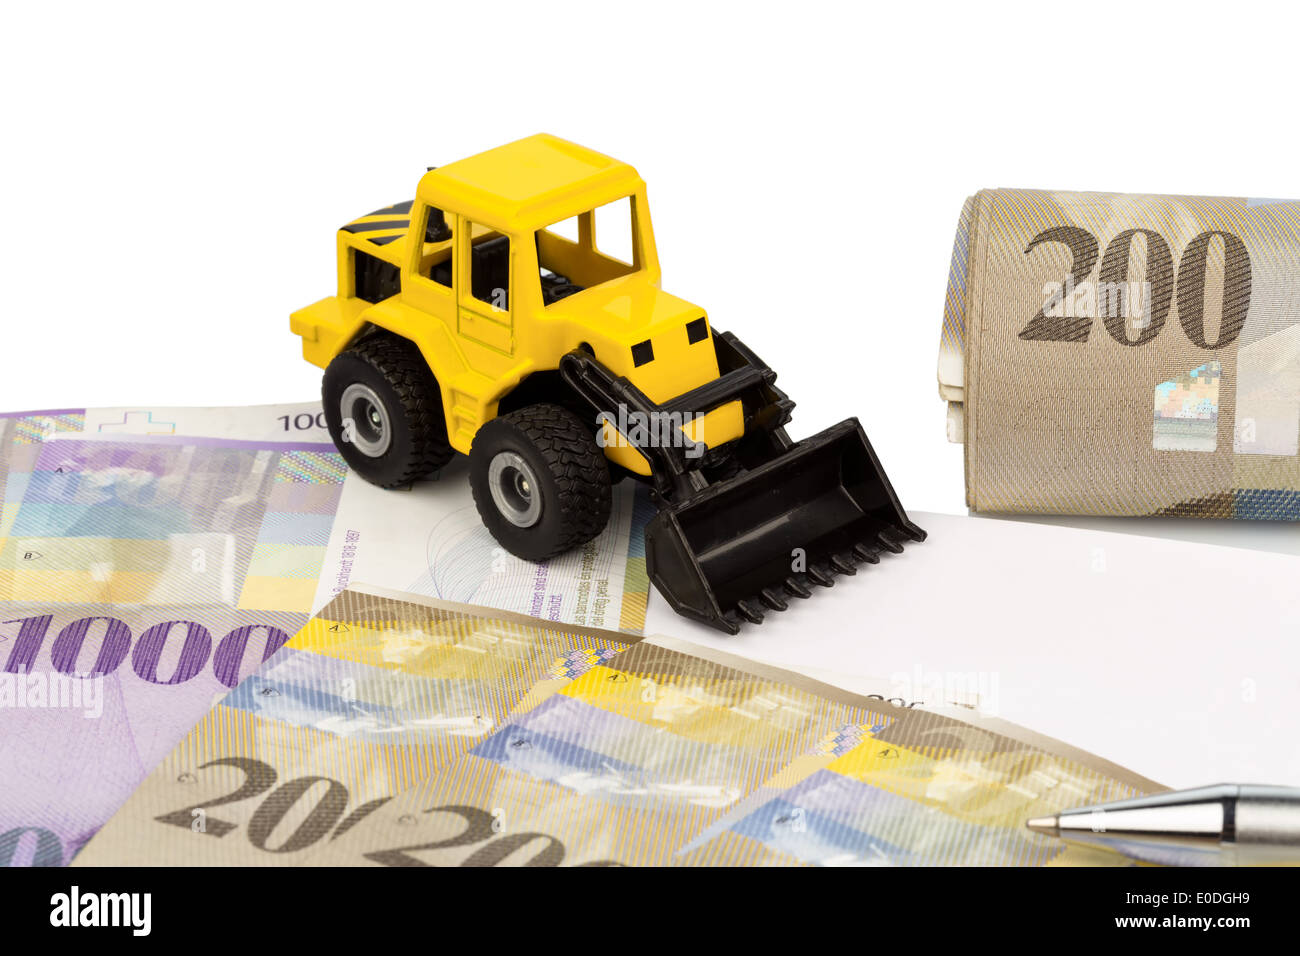 A bill of sale for new excavator. Invest in new vehicles brings cost advantages. With Swiss Franconia, Ein Kaufvertrag fuer neue - Stock Image